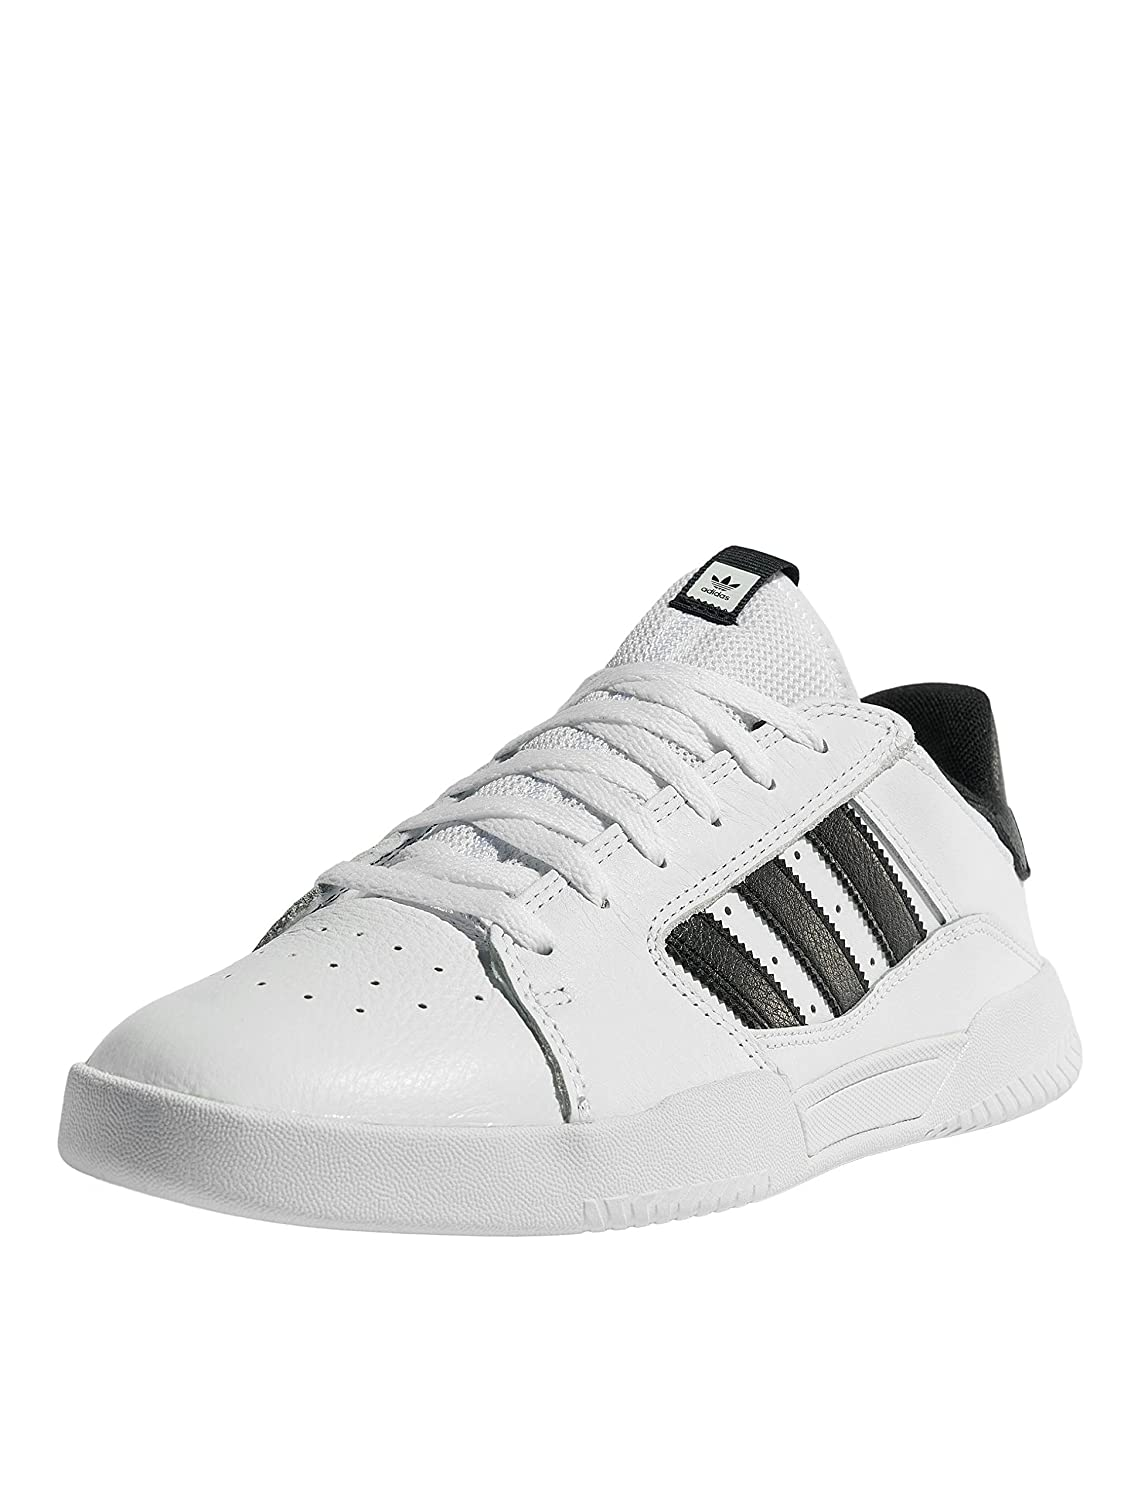 Adidas Vrx Low, Chaussures de Skateboard Homme B41486